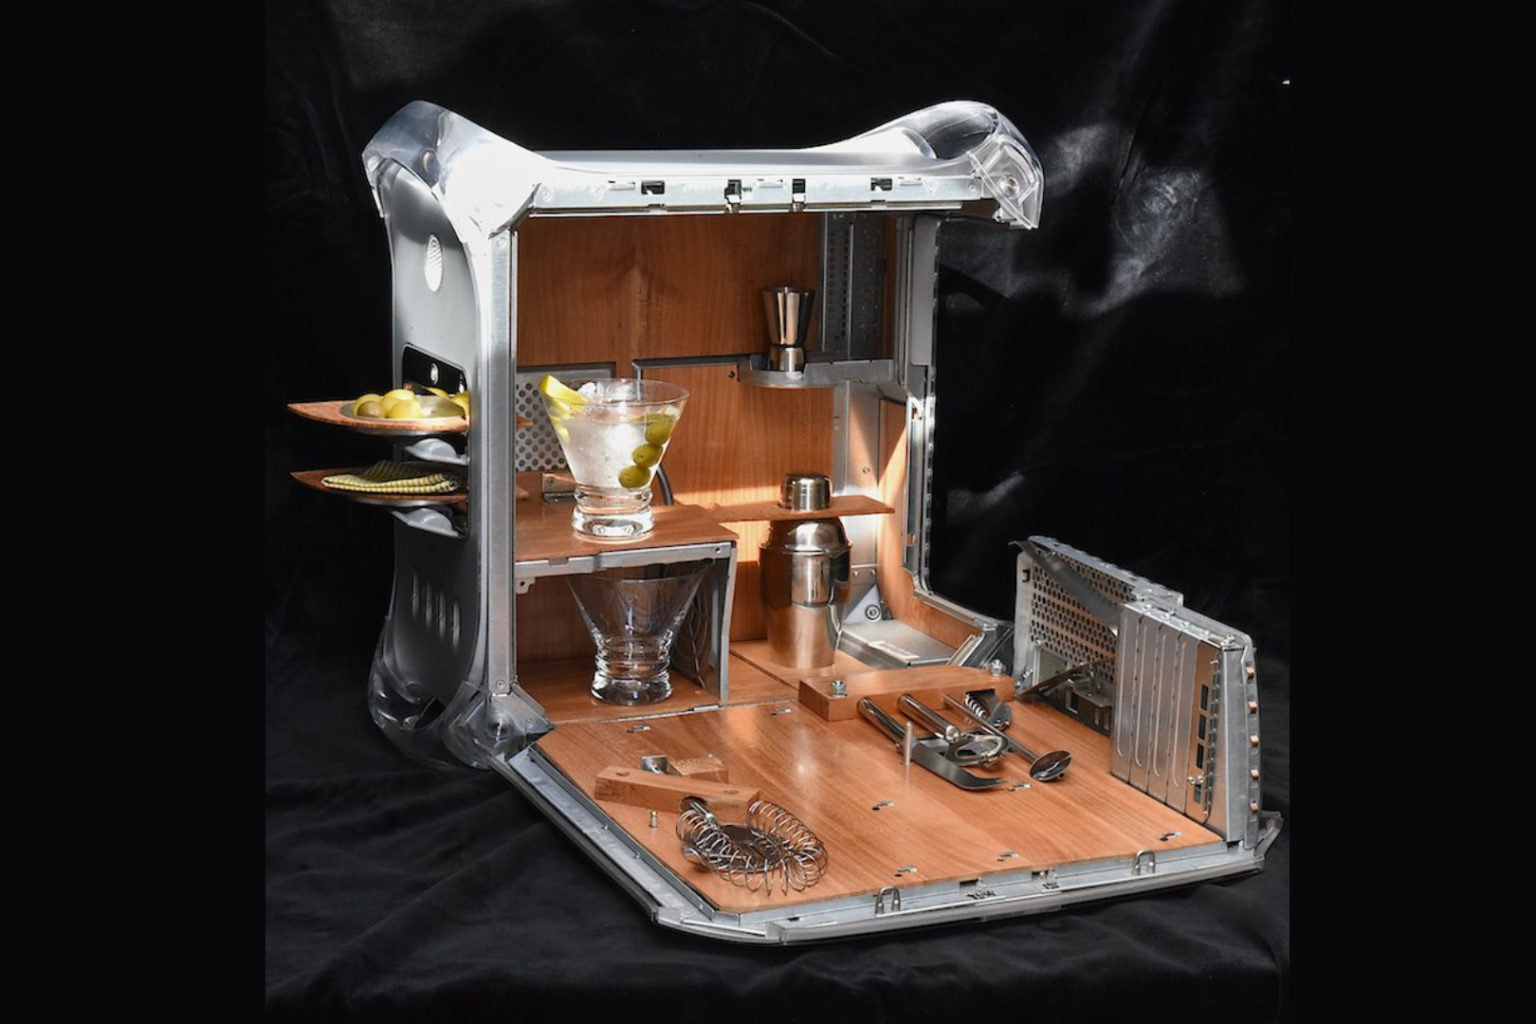 A total show piece: The Power Mac G4 cocktail cabinet known as the McMartini.